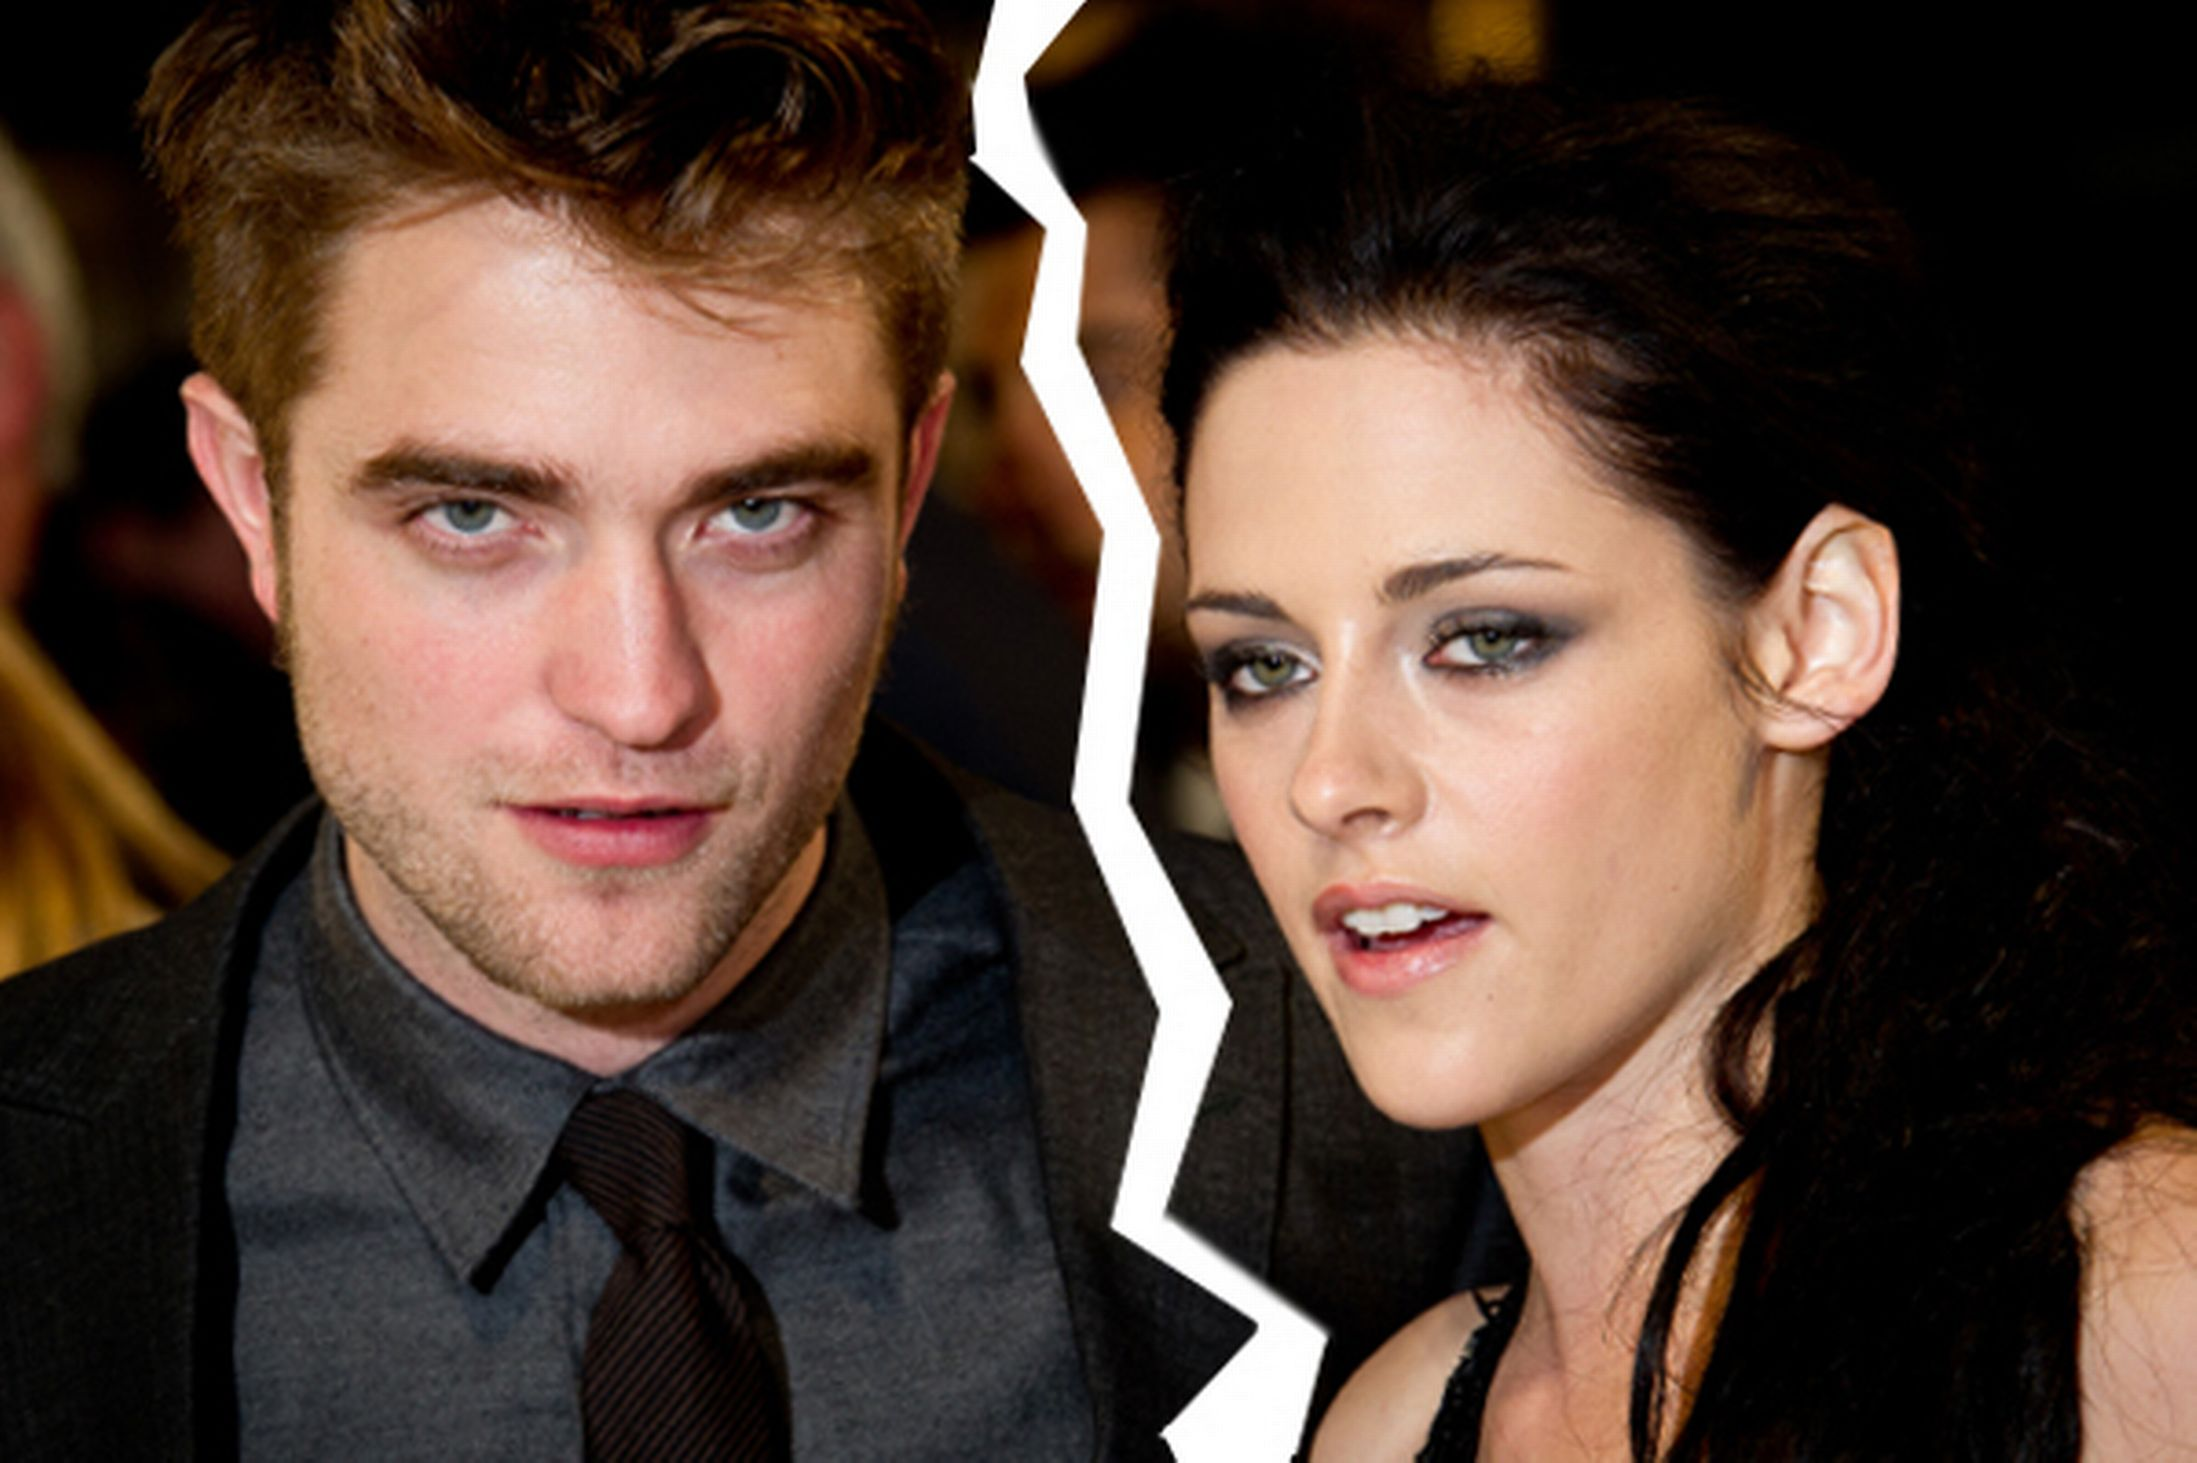 Robert Pattinson and Kristen Stewart on Different Ways from Their Breakup